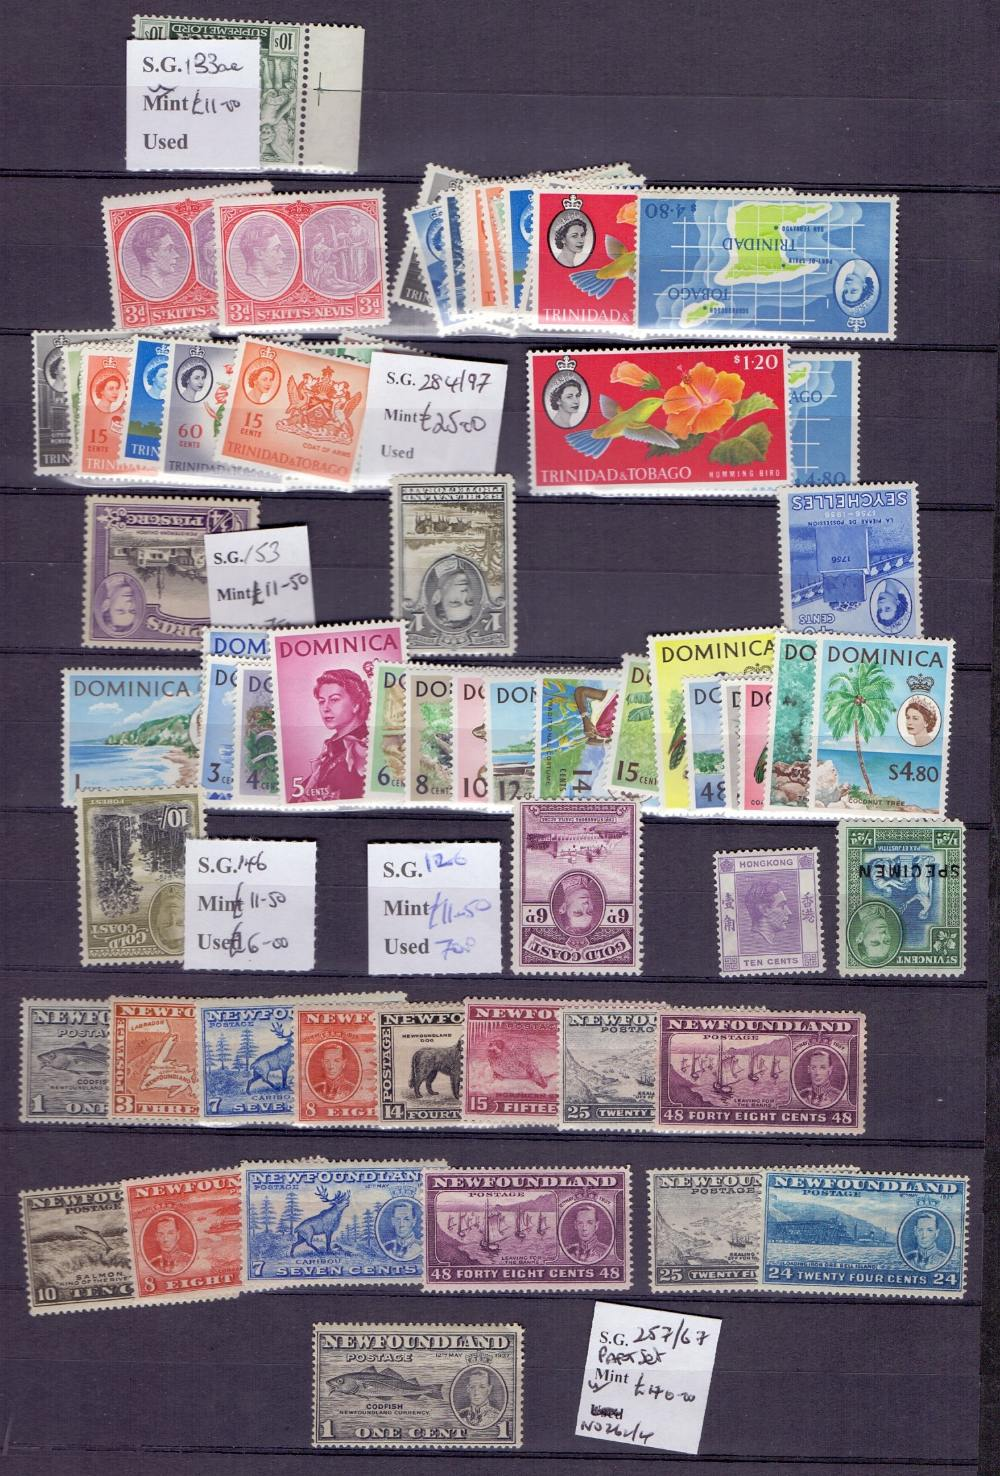 Lot 28 - STAMPS : Commonwealth duplicated mint and used in partially filled large stock book,